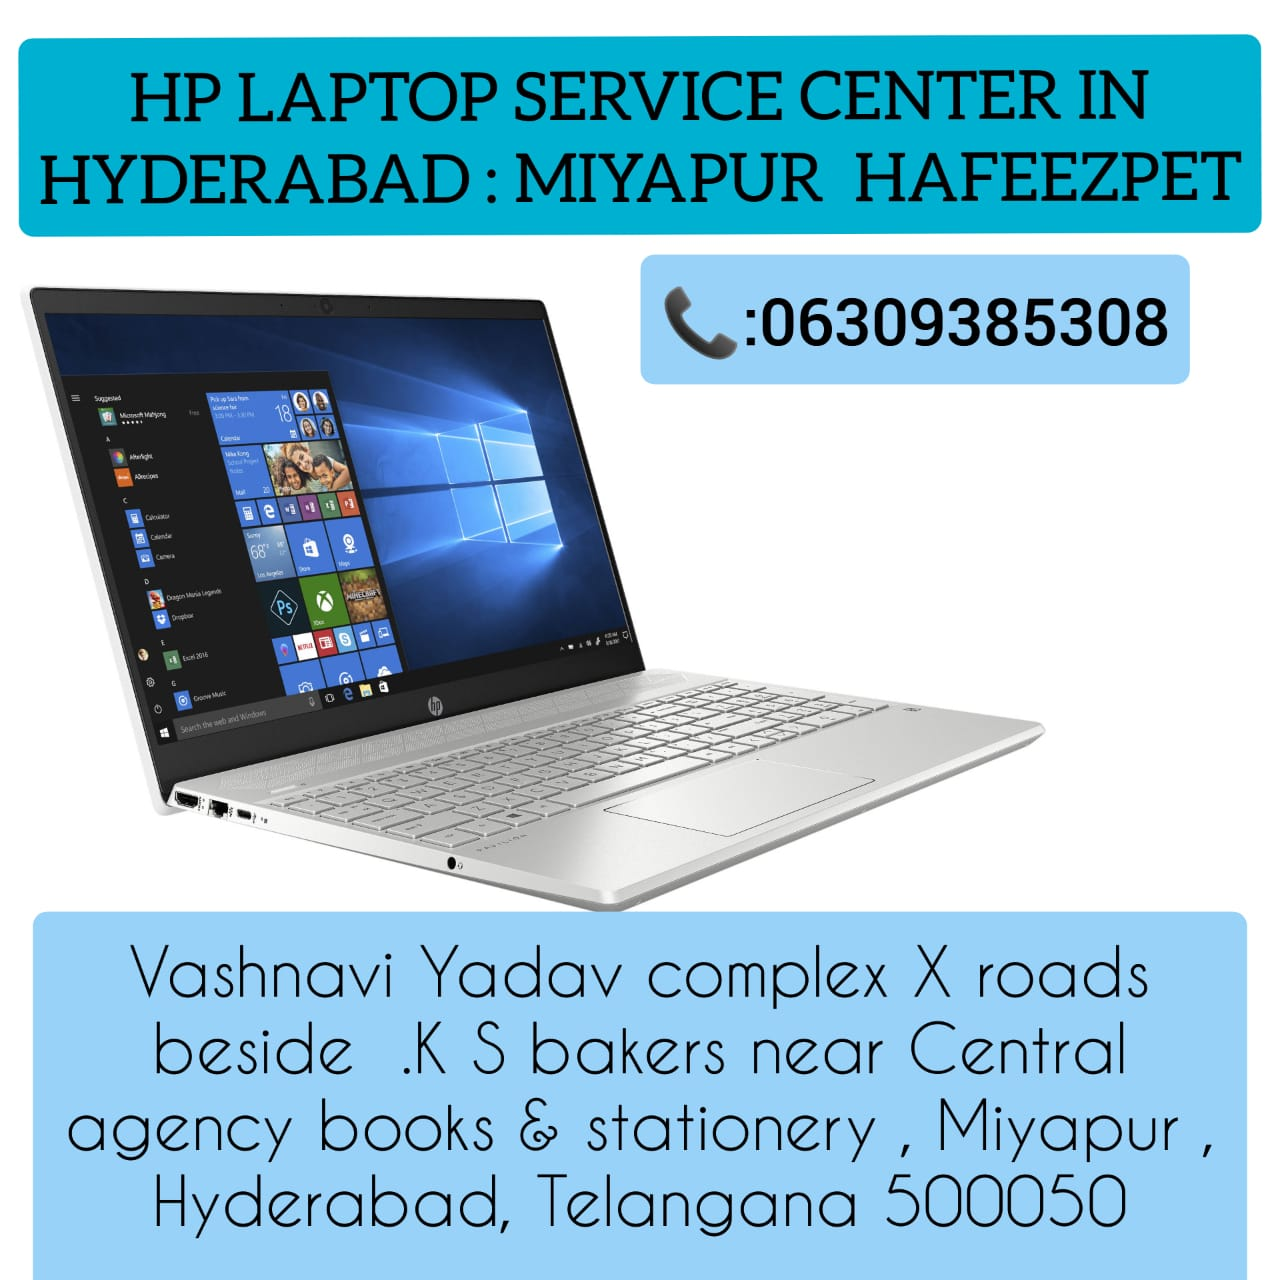 Hp Laptop Service Center In Hyderabad Miyapur